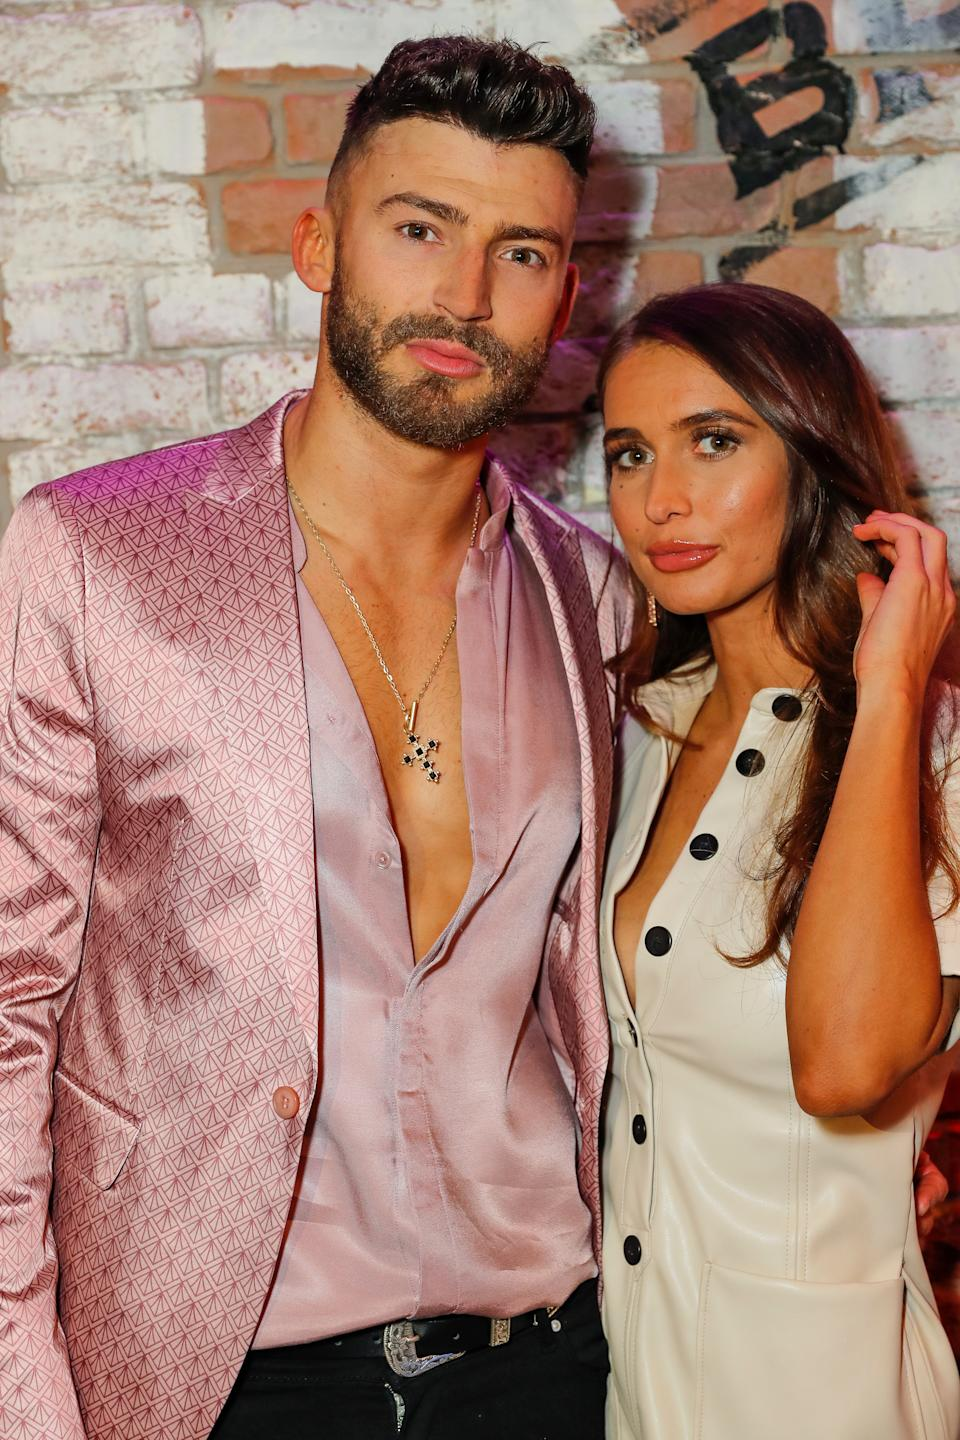 LONDON, ENGLAND - MARCH 28: Jake Quickenden and Sophie Church attend the press night after party for the 50th anniversary production of